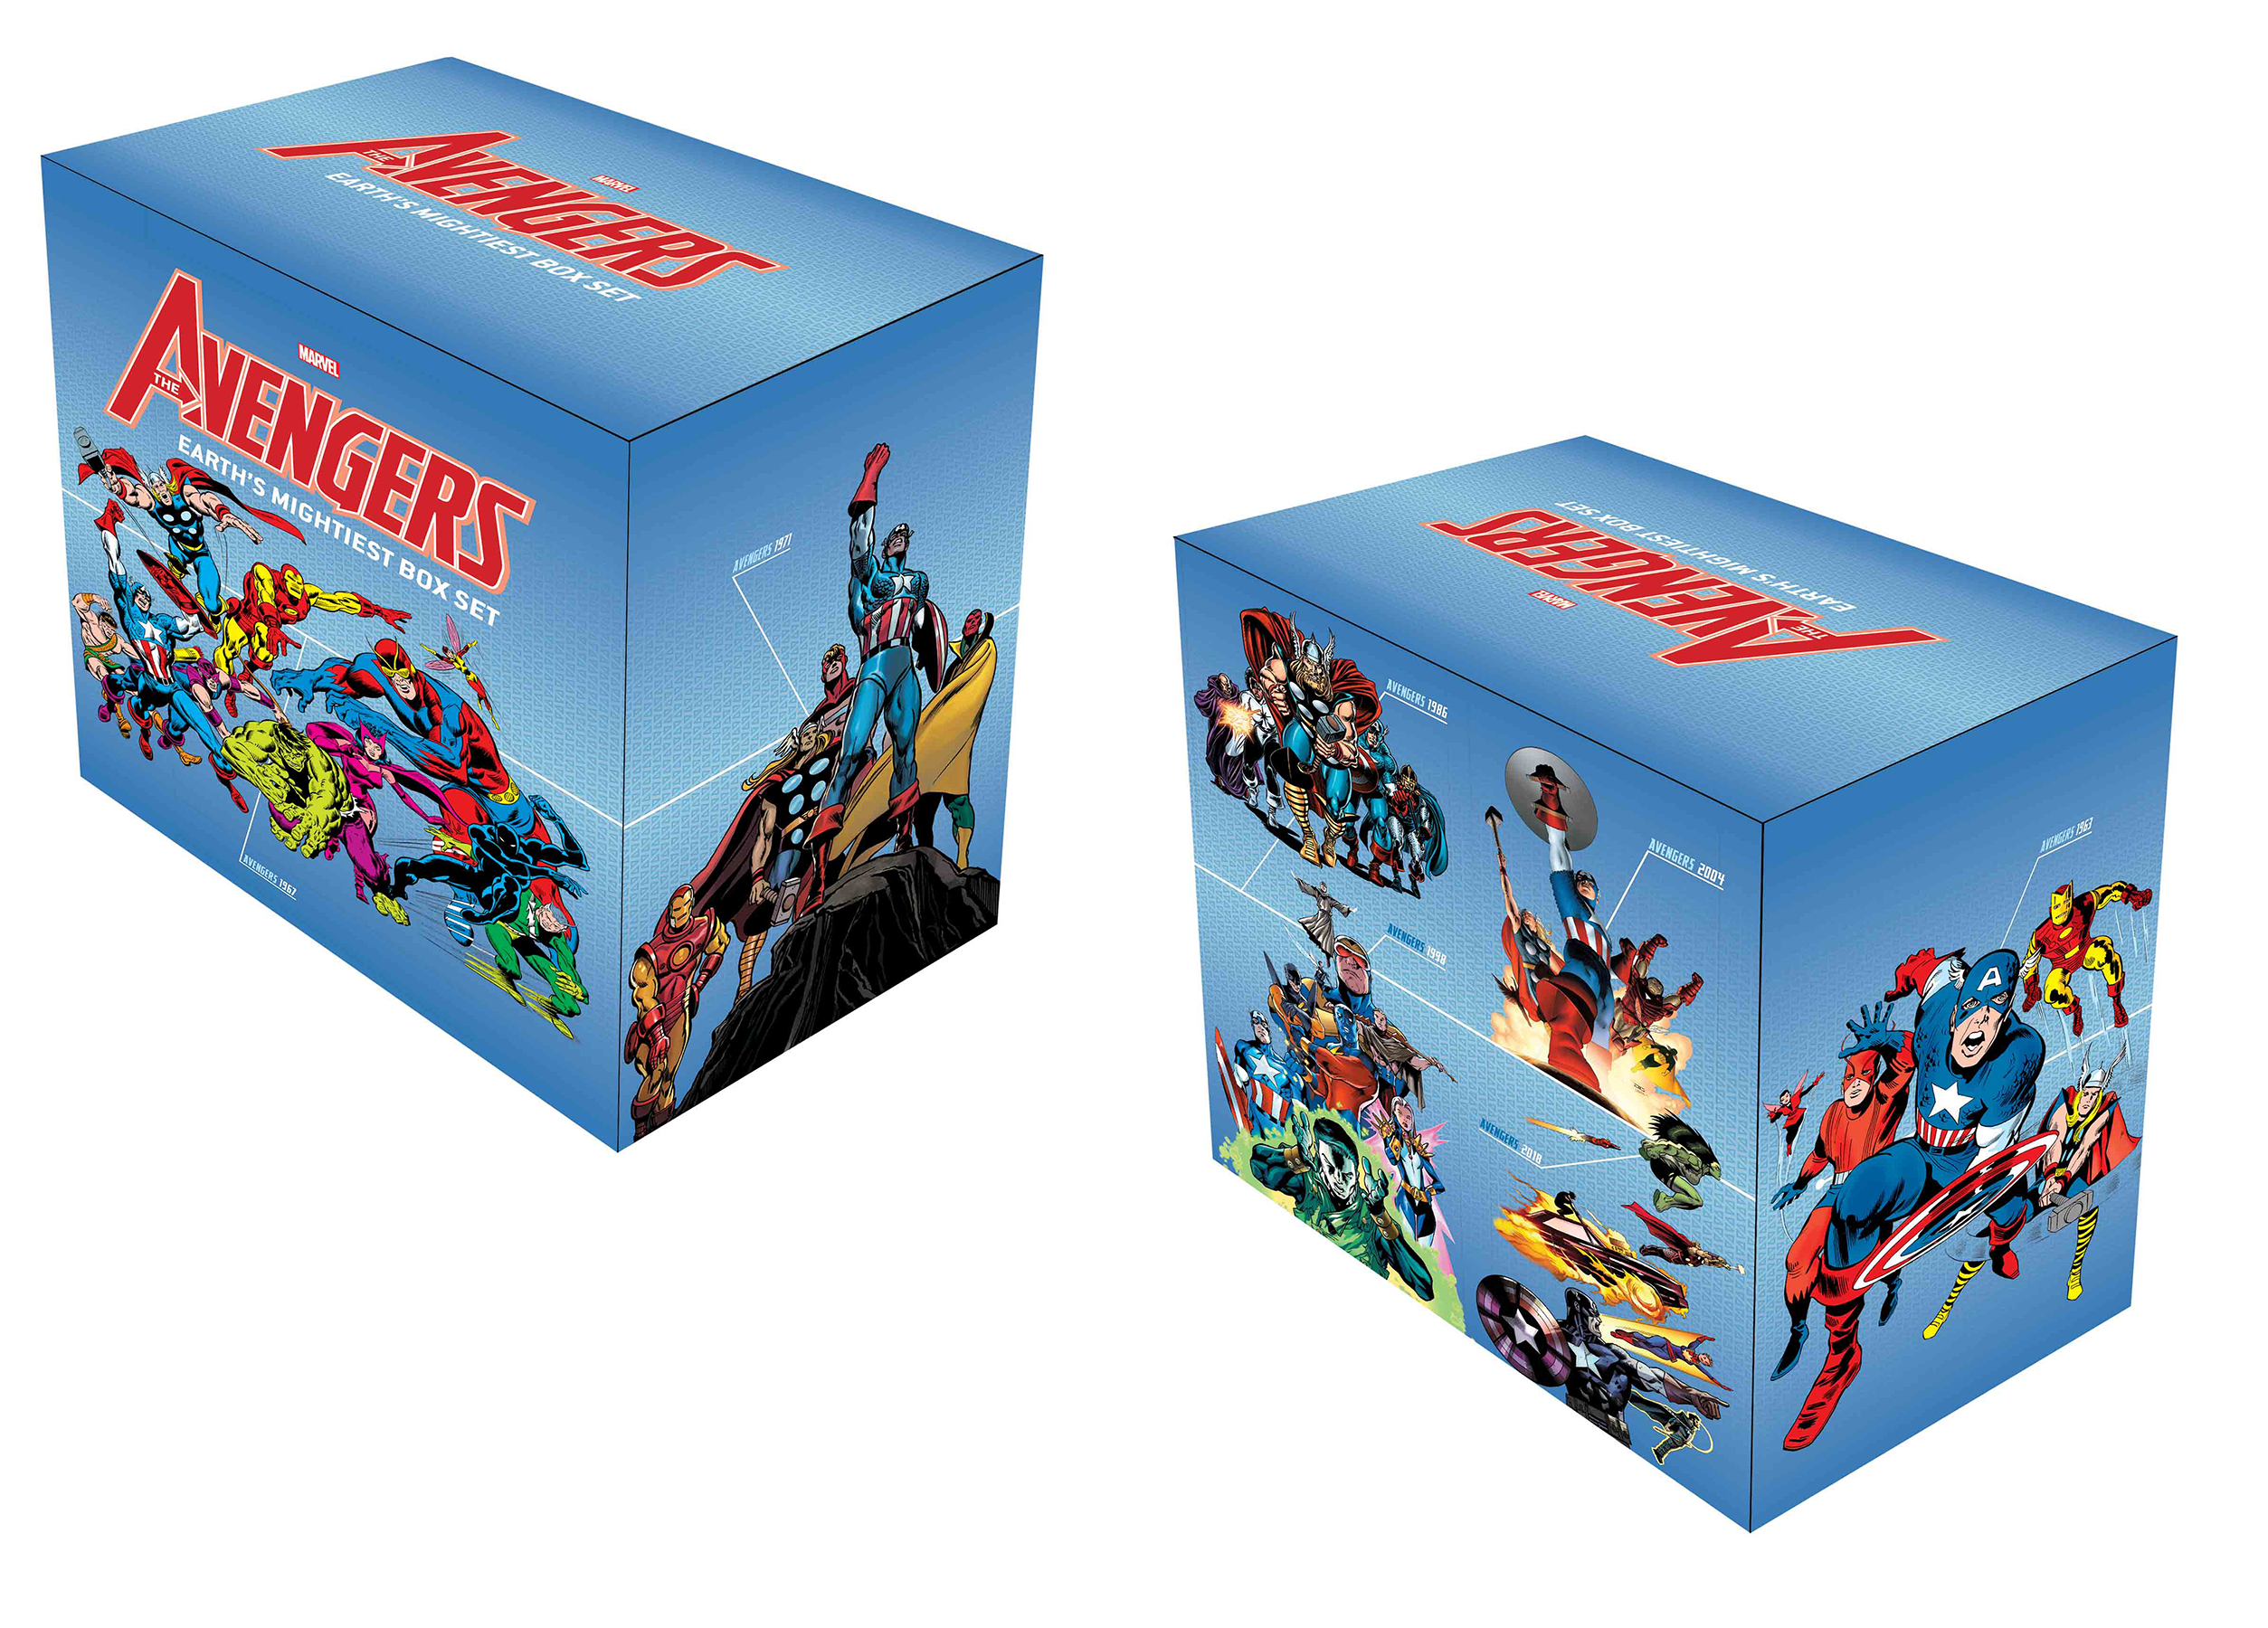 AVENGERS EARTH MIGHTIEST BOX SET SLIPCASE